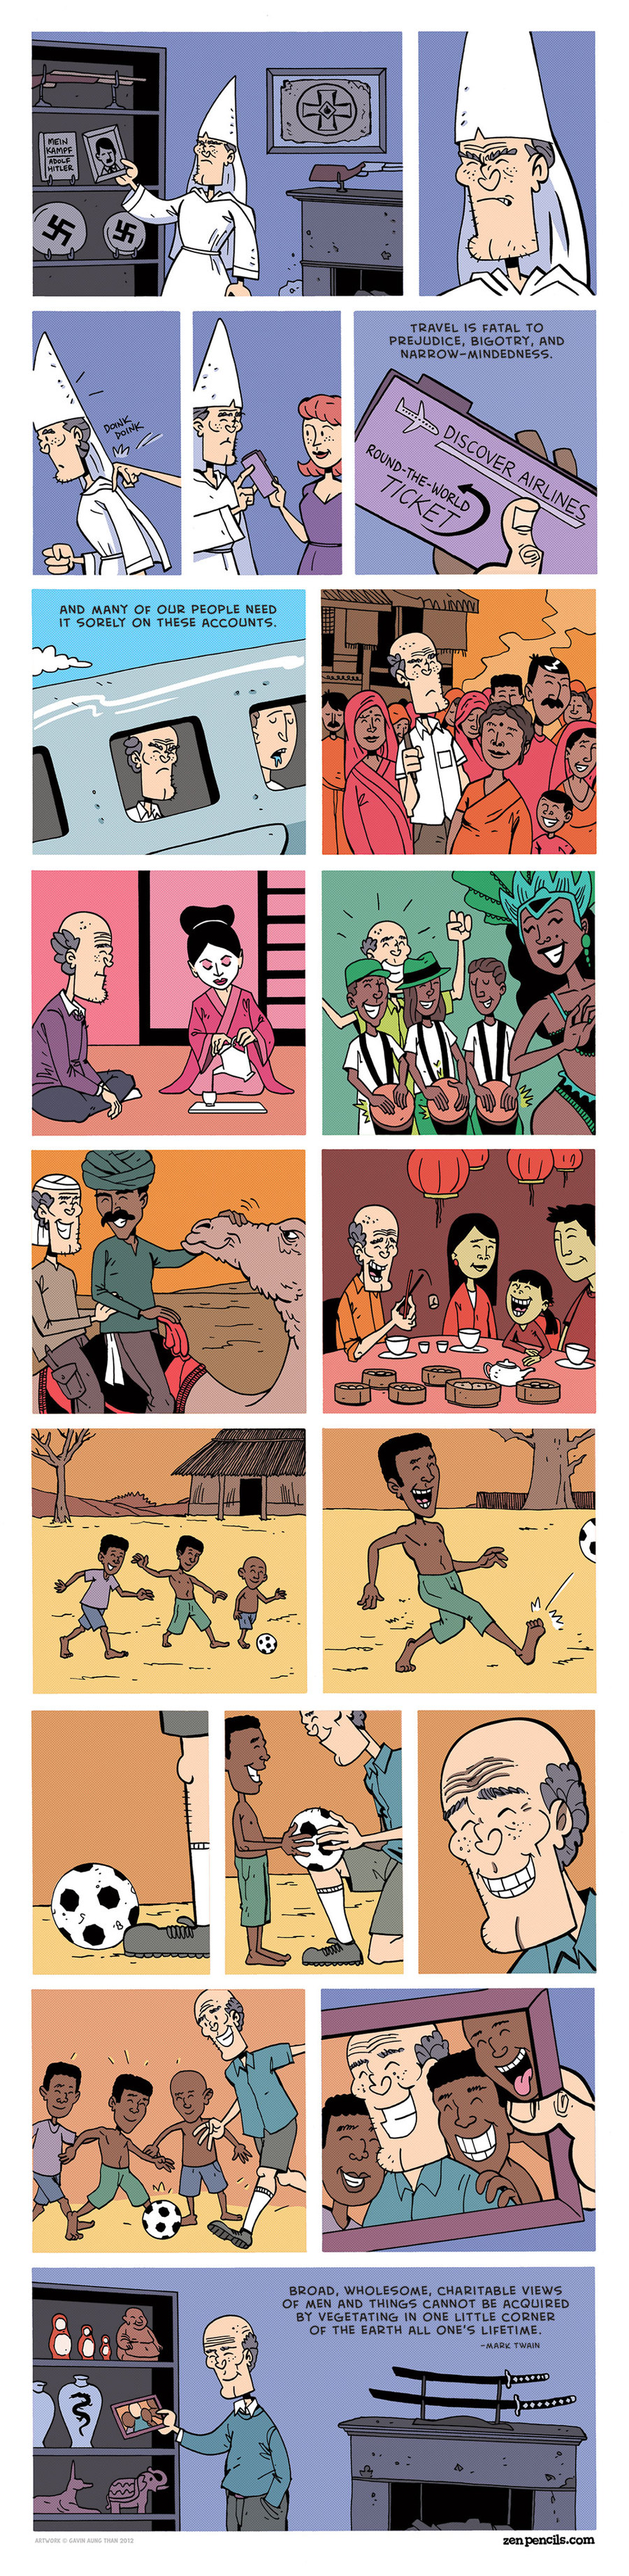 Zen Pencils for Nov 29, 2013 Comic Strip